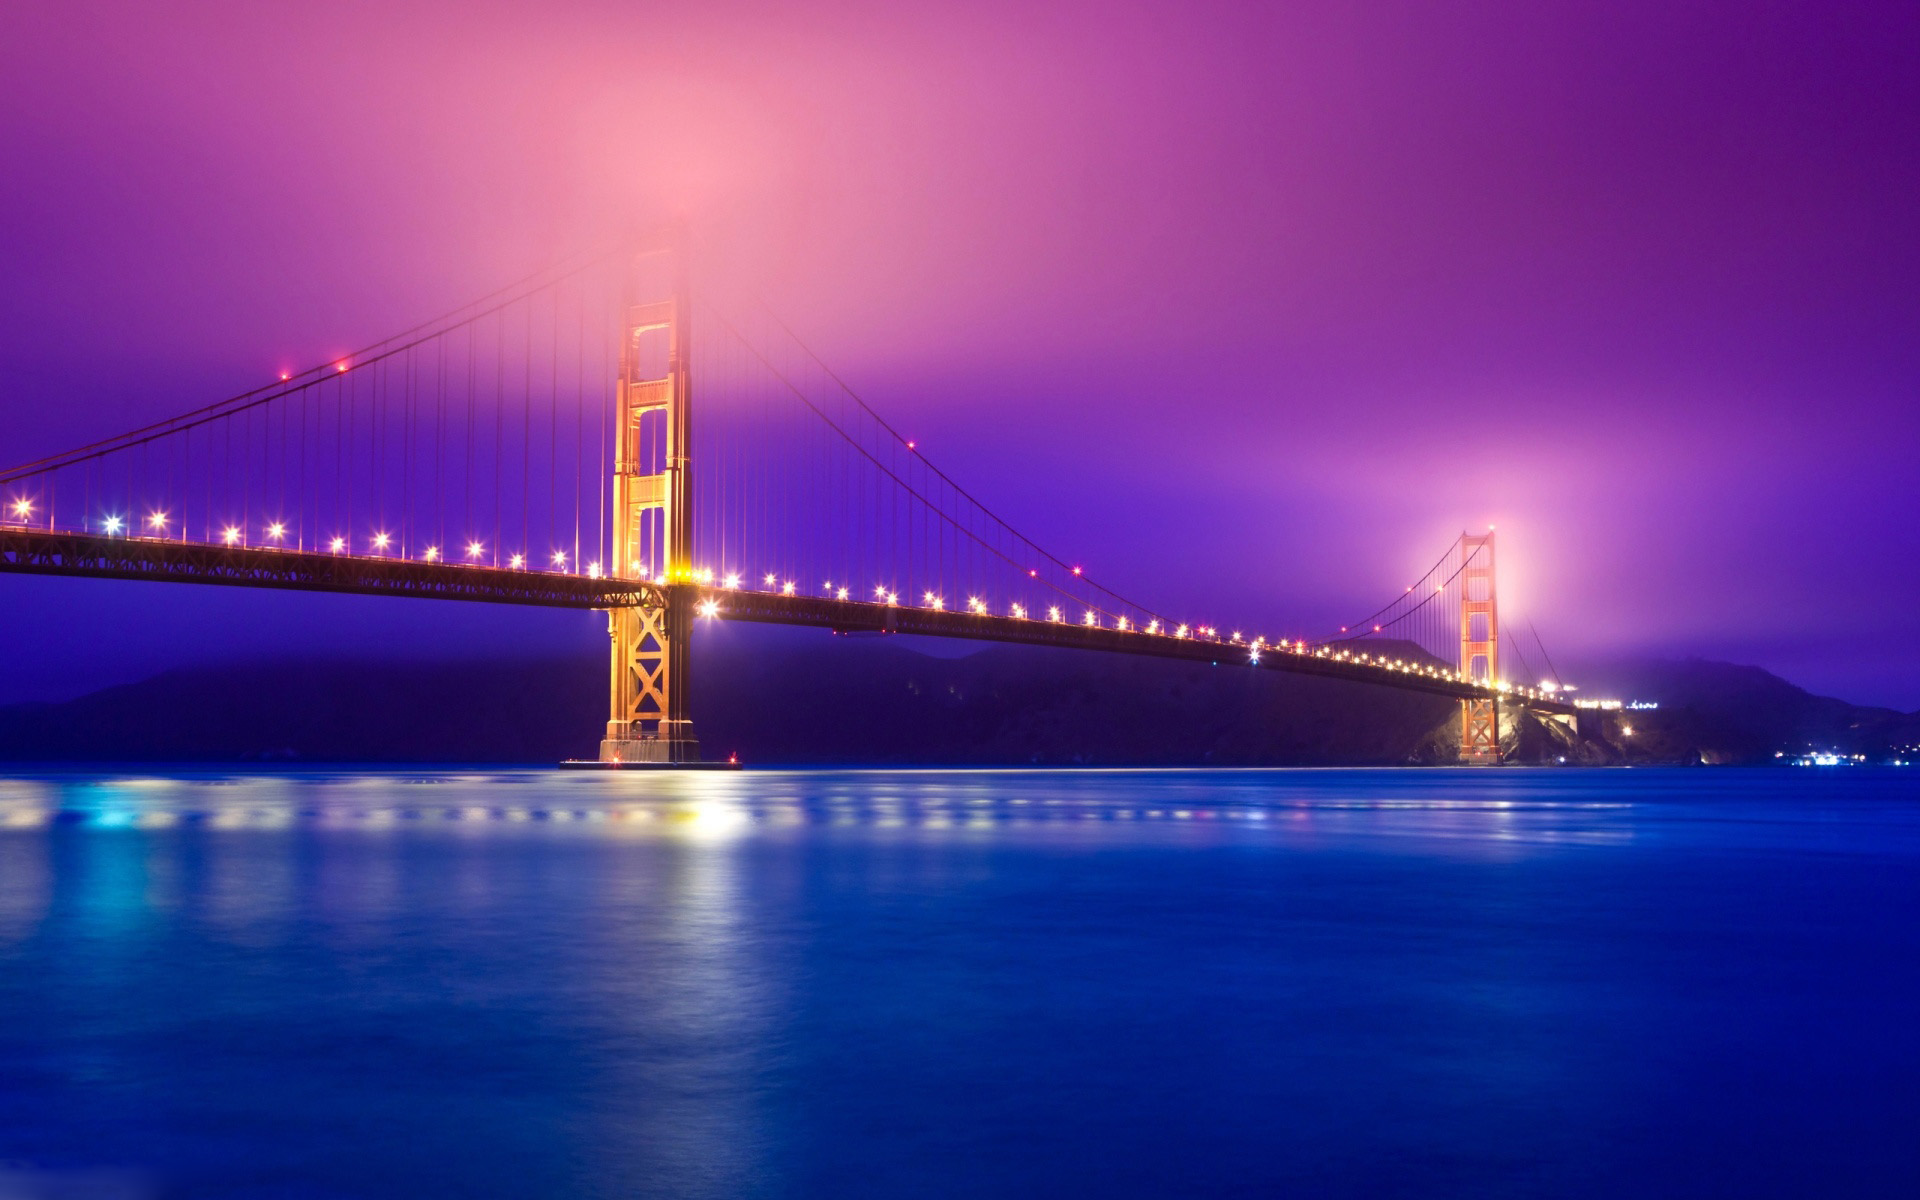 San Francisco Bridge Night Lights